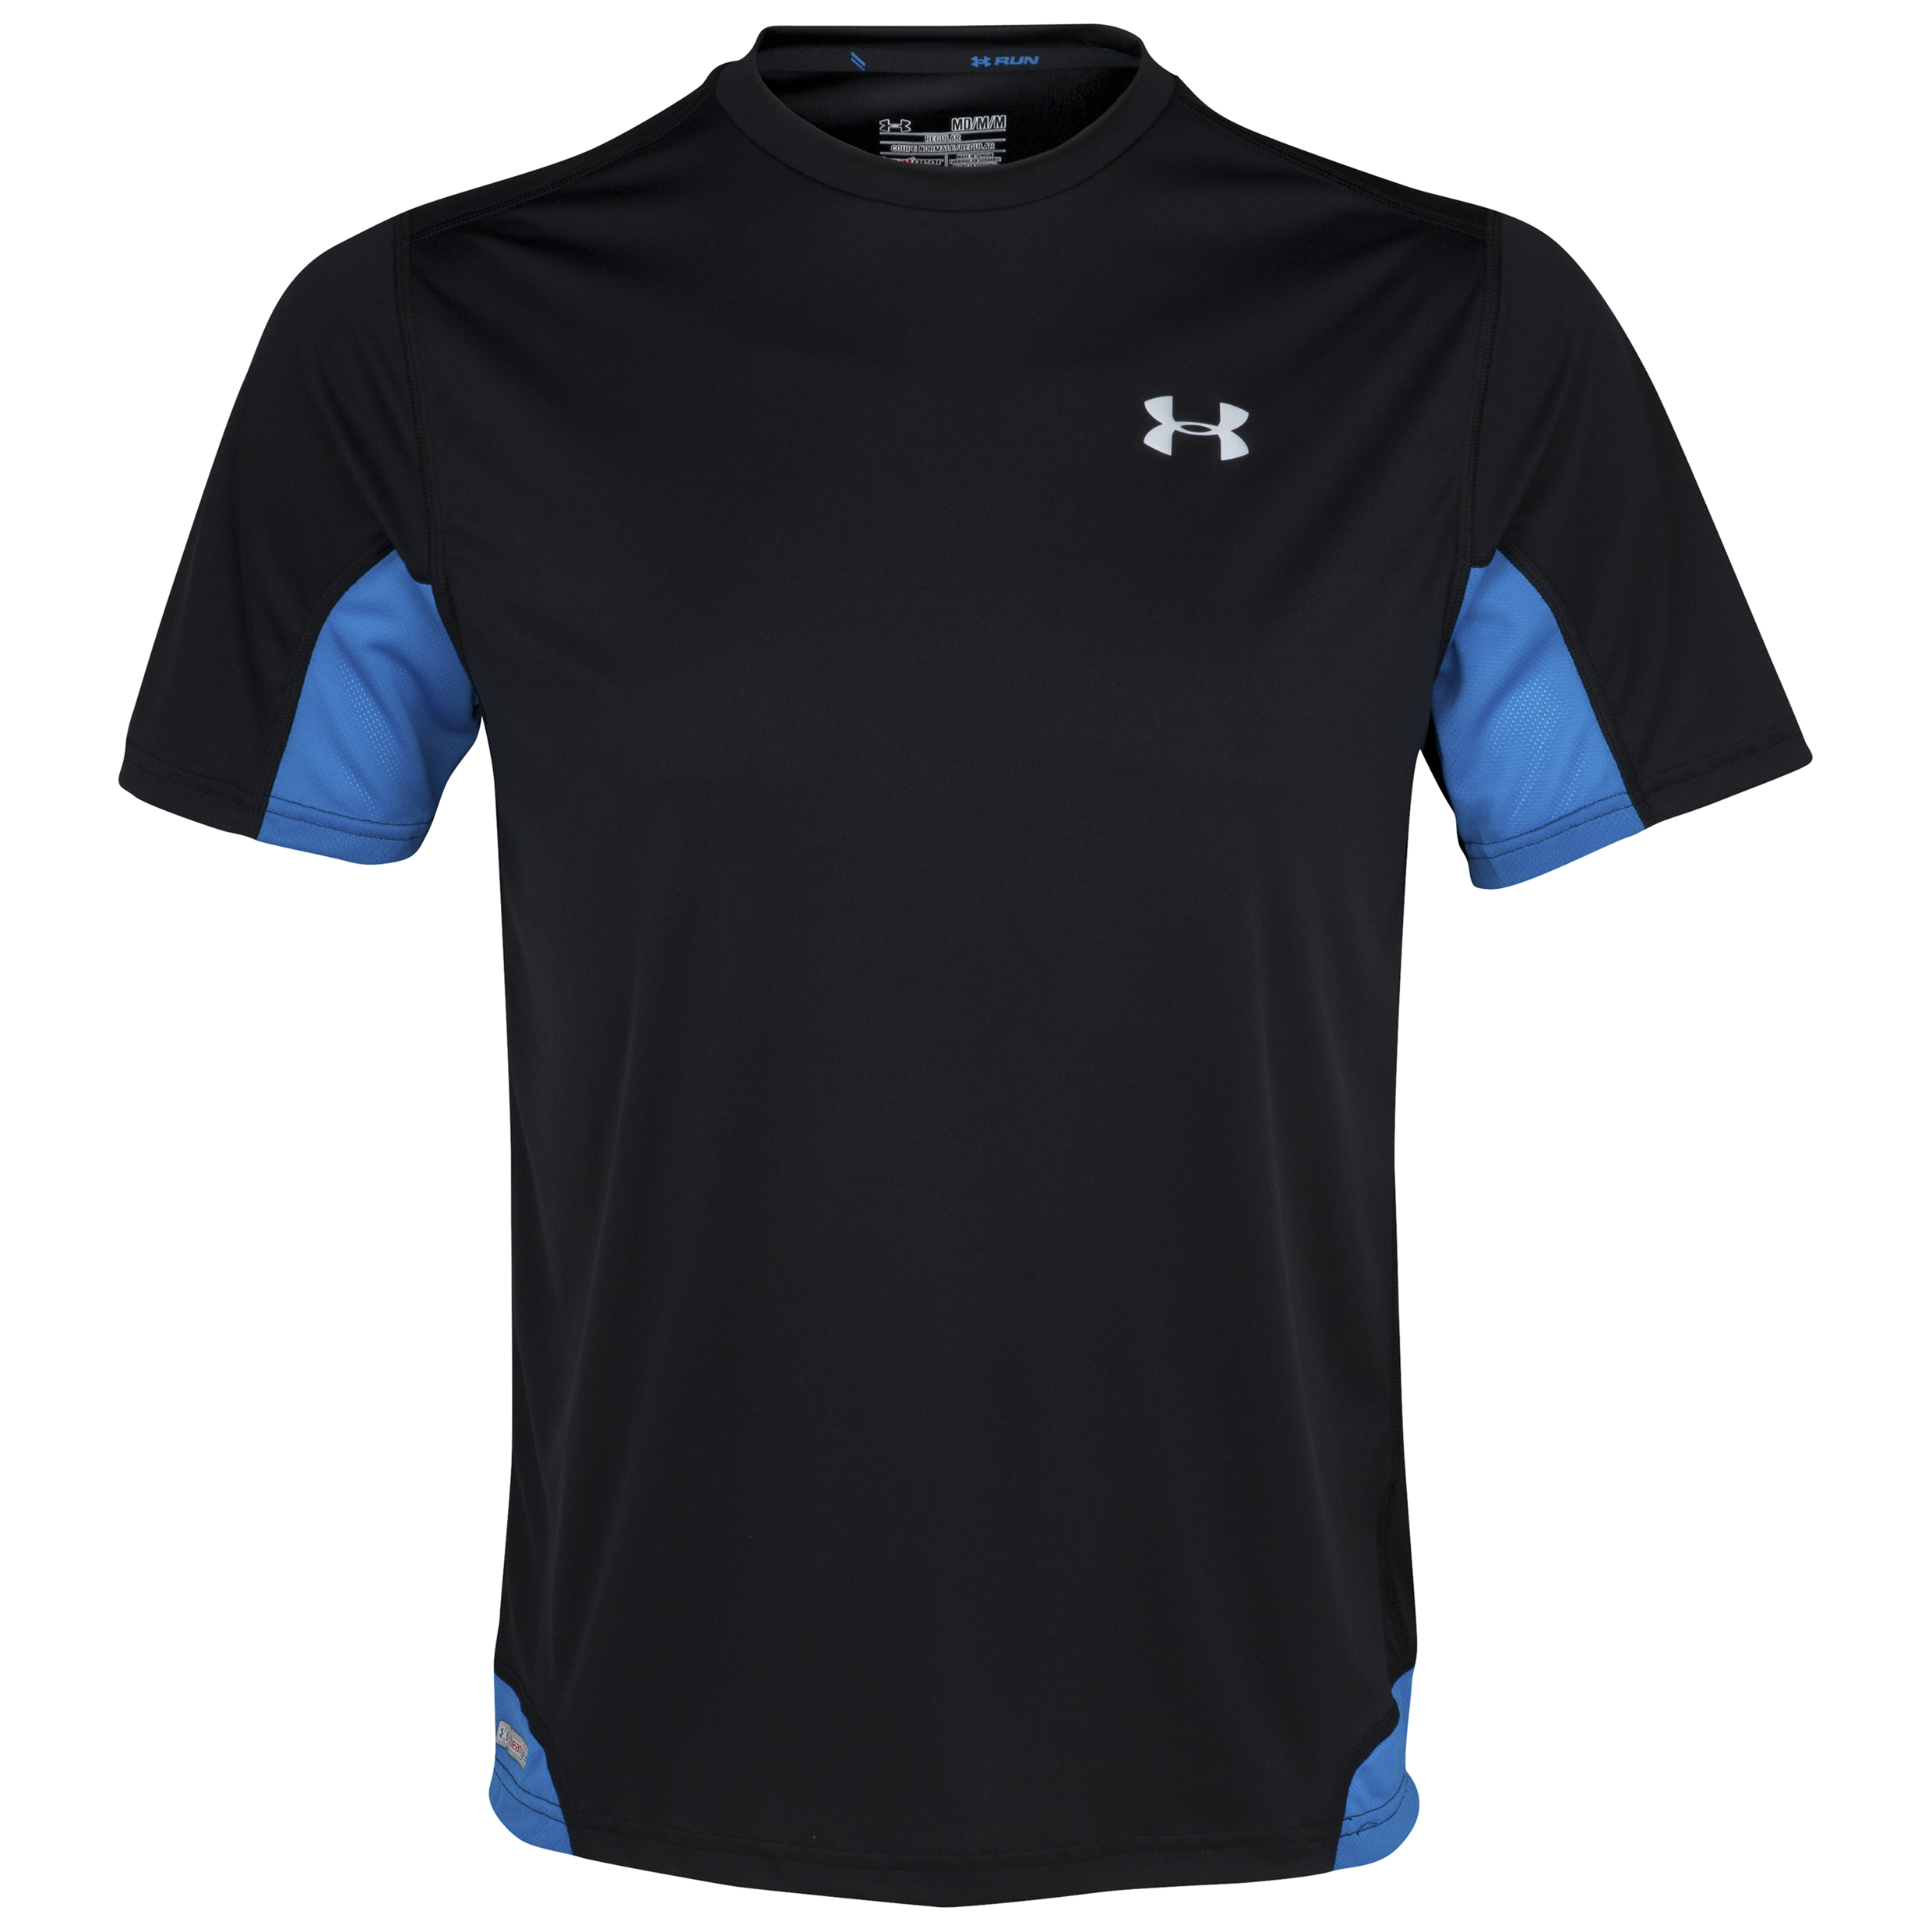 Under Armour HG Flyweight Run Short Sleeve T-Shirt - Black/Graphite